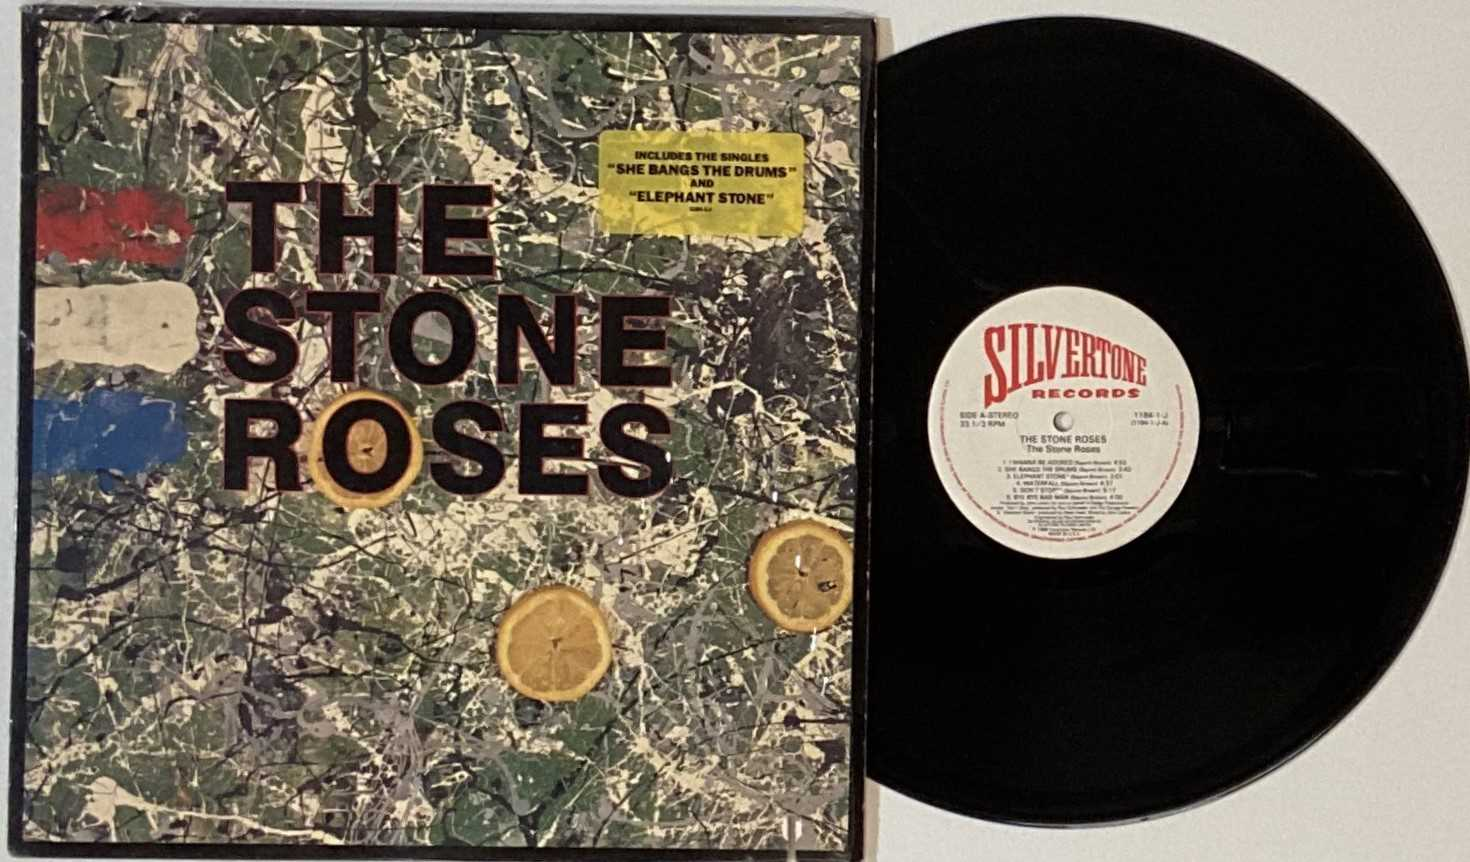 THE STONE ROSES - THE STONE ROSES LP (COMPLETE OG US COPY WITH PRESS RELEASE - SILVERTONE 1184-1-J)